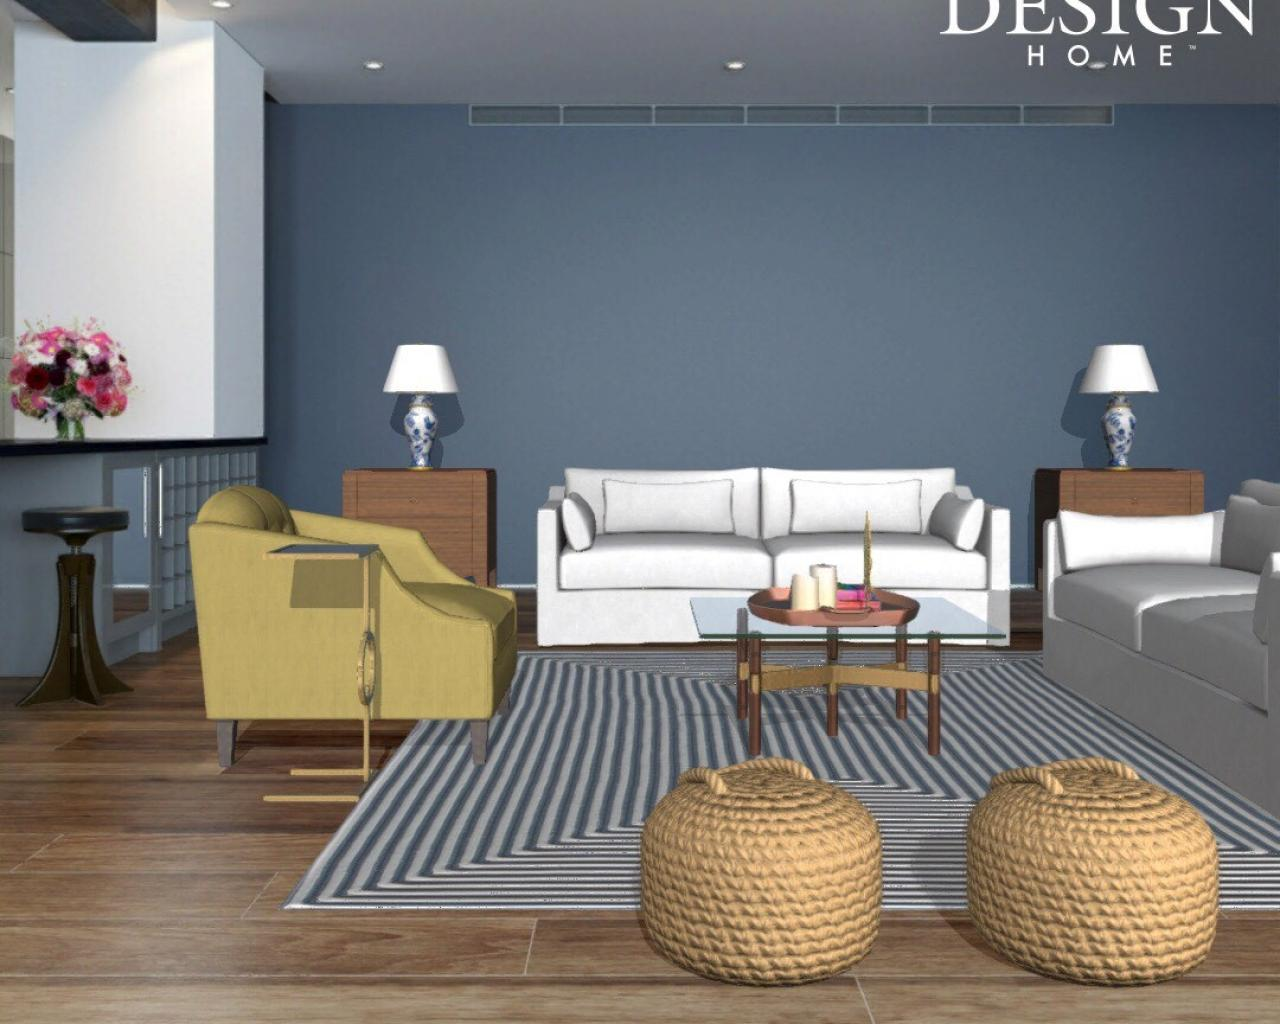 Be an interior designer with design home app hgtv 39 s for Decorating a house